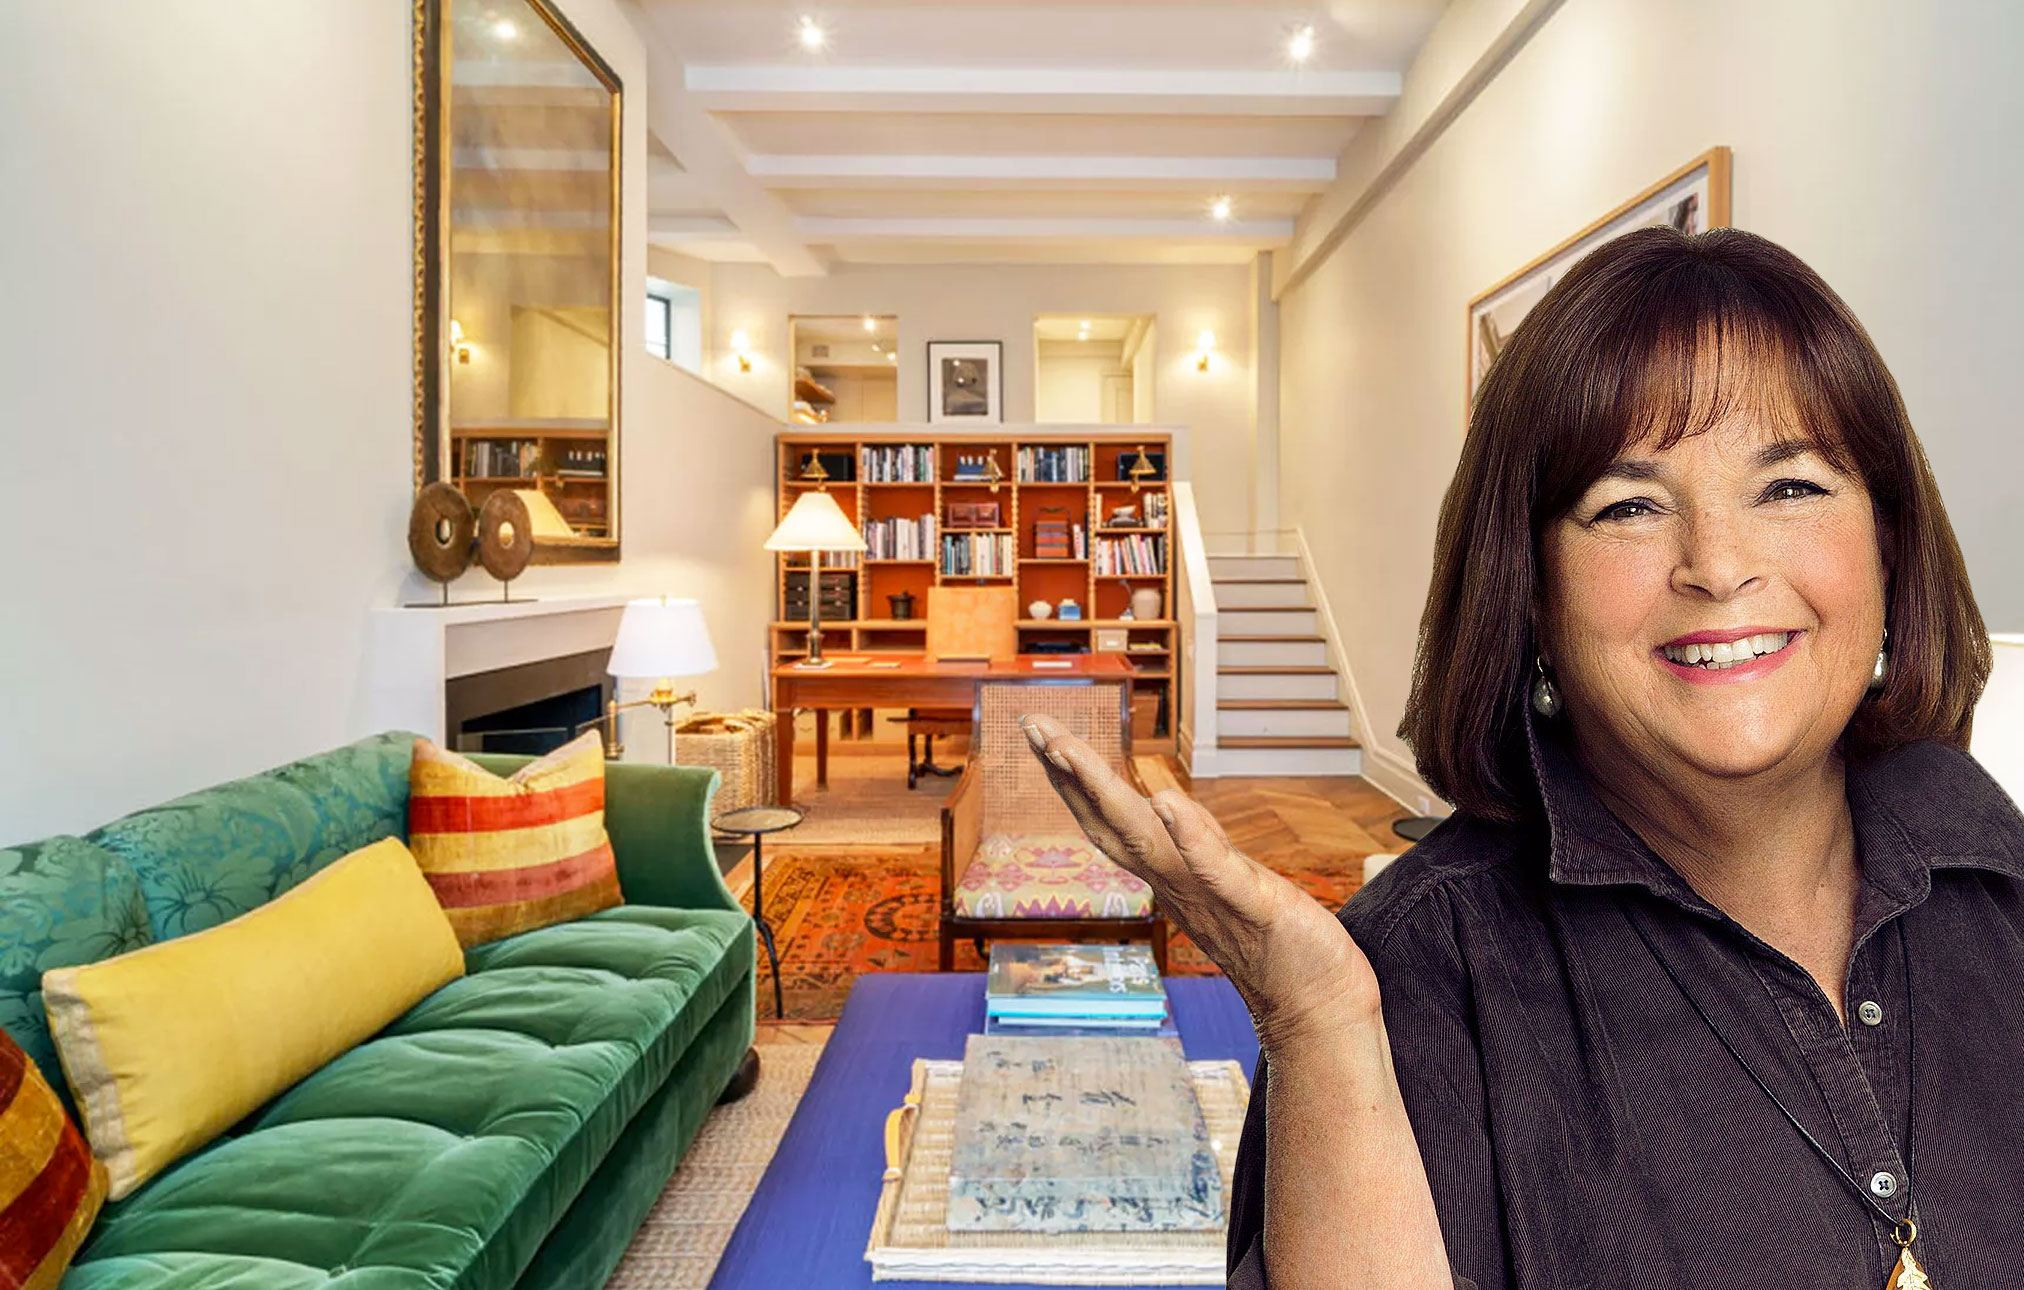 Ina Garten Photos barefoot contessa' ina garten asks $2m for parisian-style upper